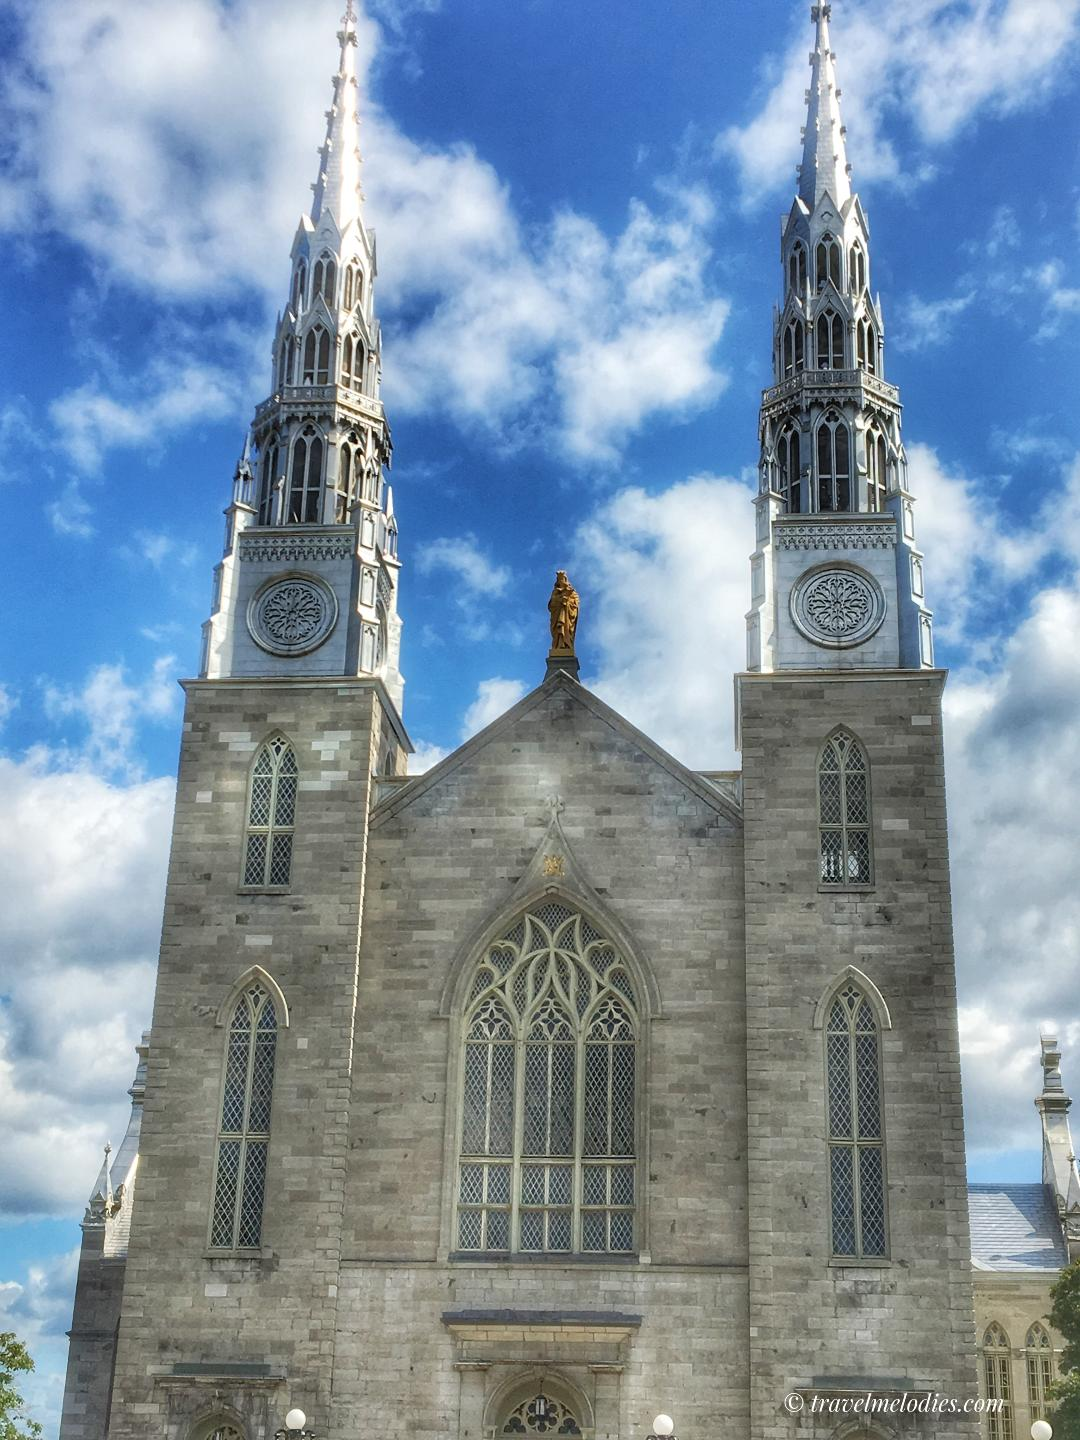 Notre Dame Cathedral in Ottawa, Canada is one of the famous Ottawa points of interest. Here's your Ottawa travel itinerary for 2 days with all you need to know, see, and do. #ottawa #ottawaitinerary #ottawacanada #ottawaattractions #ottawathingstodo